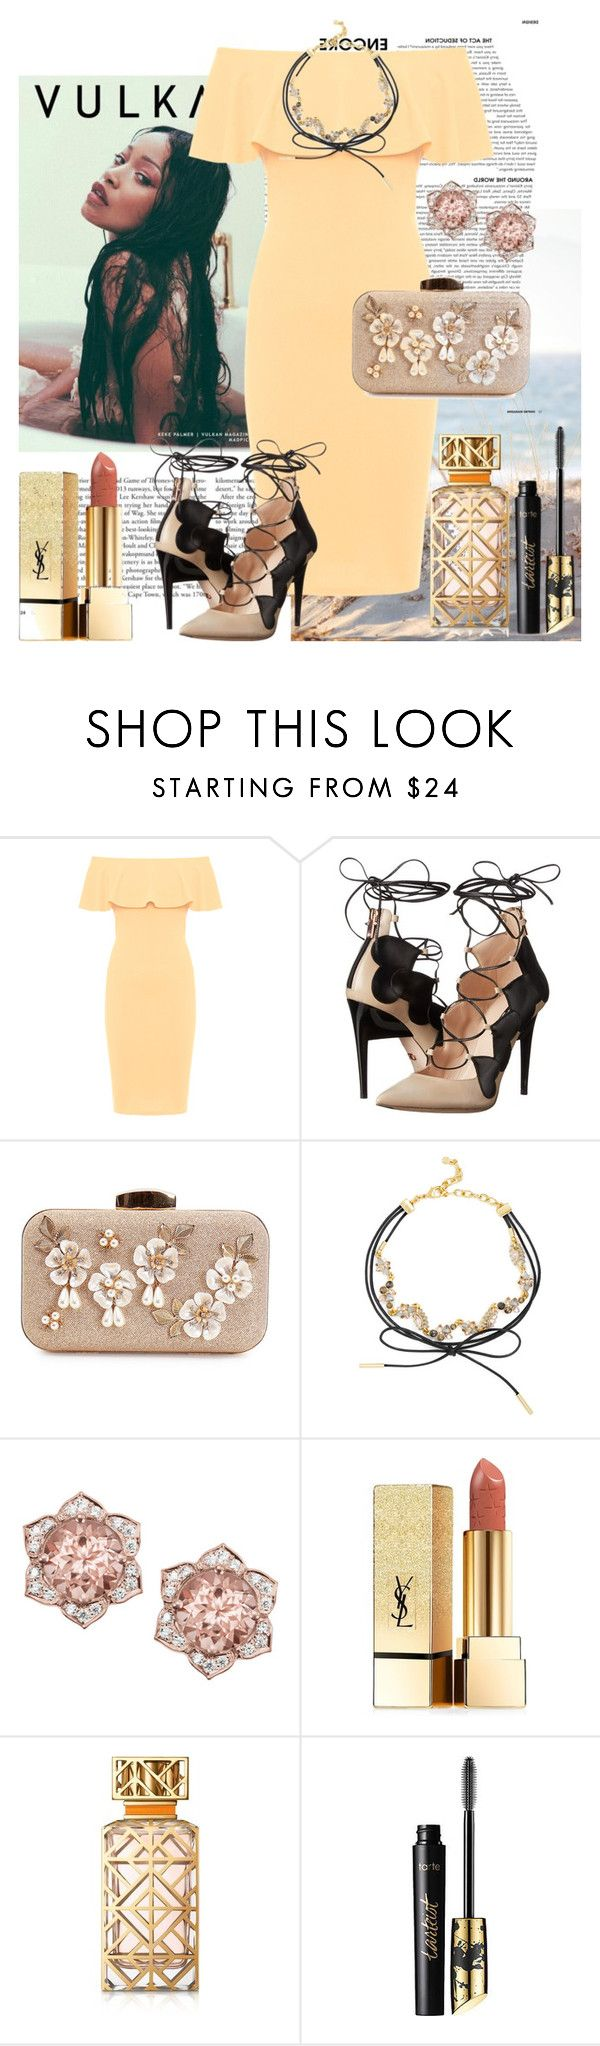 """Insense"" by raincheck ❤ liked on Polyvore featuring Kershaw, WearAll, Ruthie Davis, BaubleBar, Yves Saint Laurent, Tory Burch and tarte"